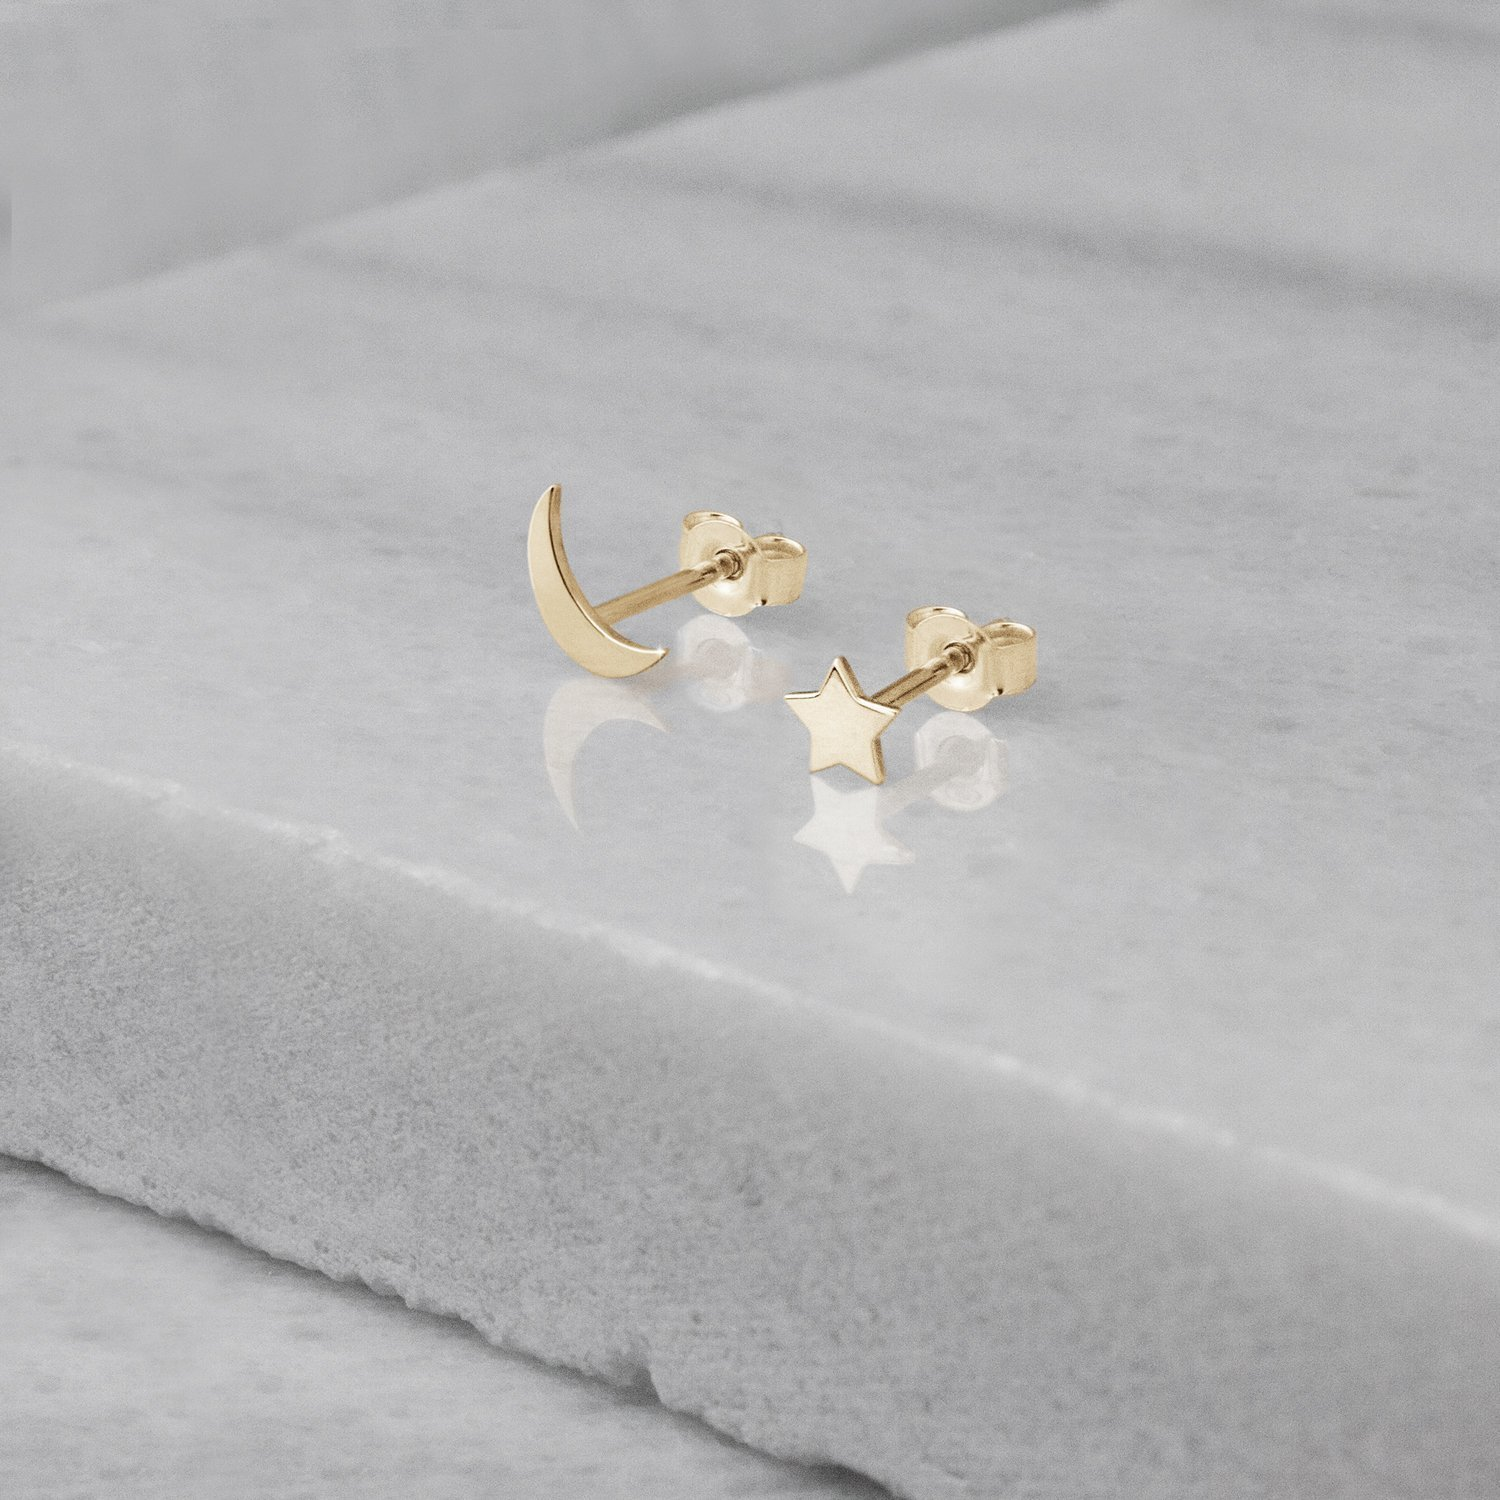 f2c8ad834 Tiny Moon Star Earrings, Mismatched Gold Studs, 9K, 14K, 18K Gold Earrings,  Yellow Gold Studs, Gold Crescent Moon, Gold Star Stud, Gift For Her, ...